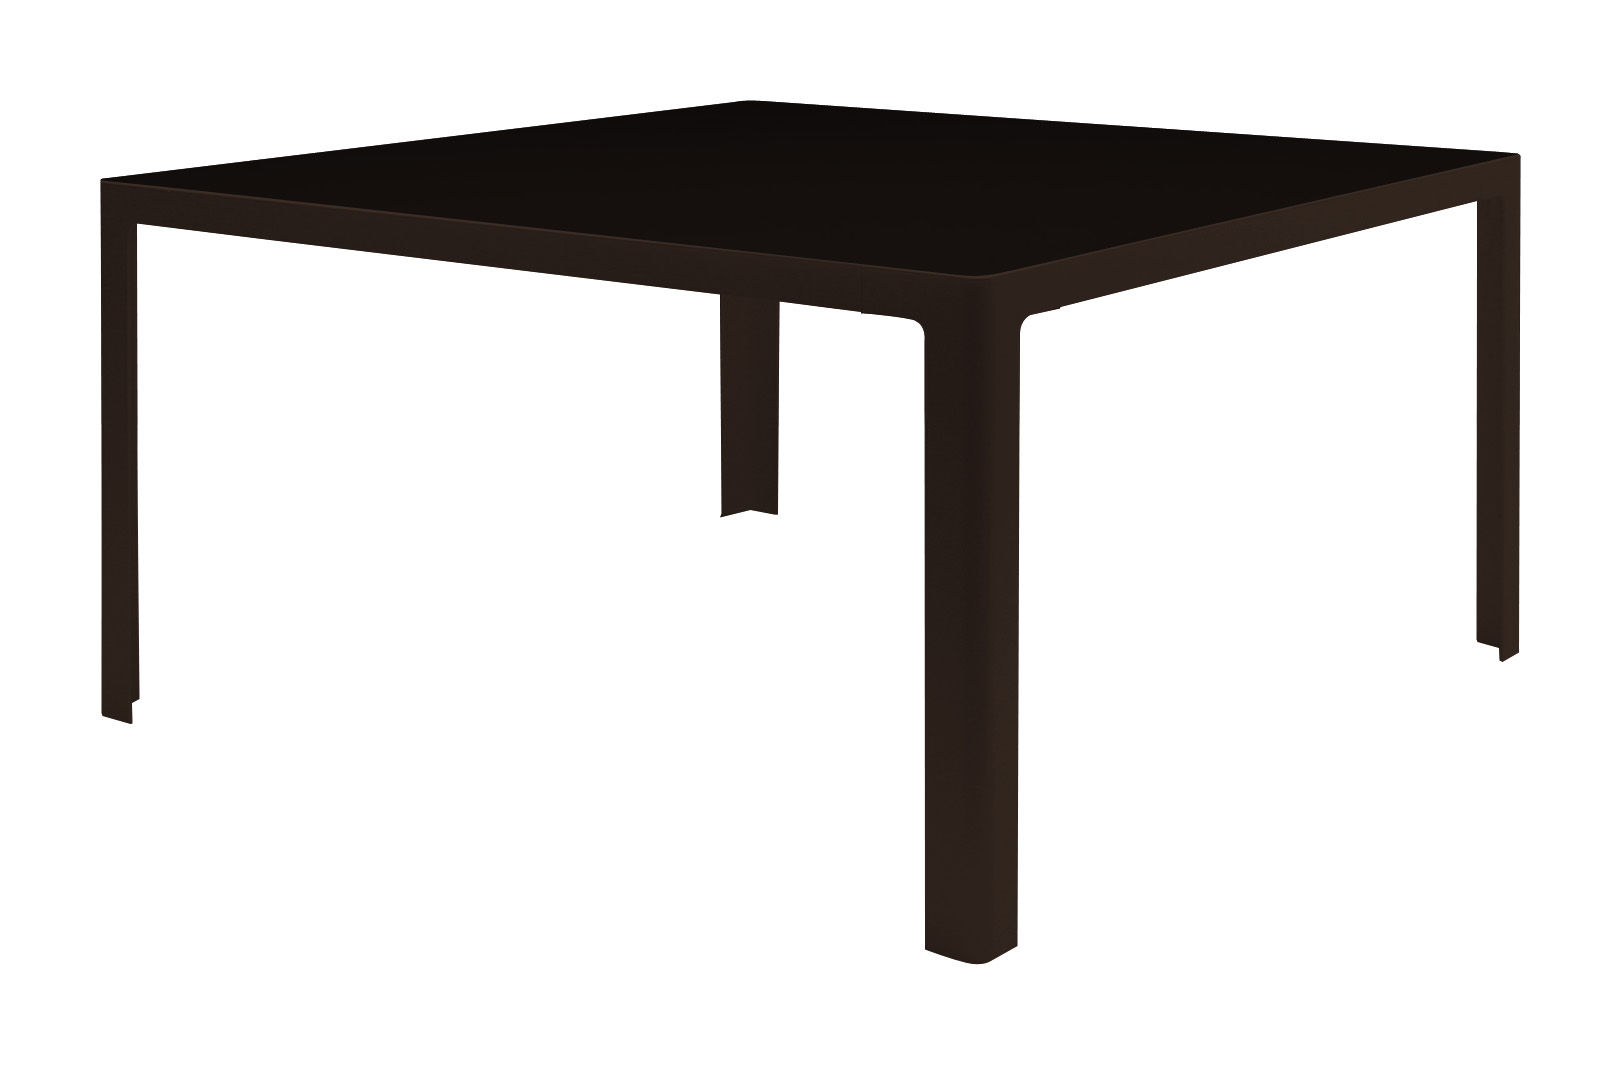 Furniture - Dining Tables - Metisse Table - square - 140 x 140 cm by Zeus - Black top / Black copper frame - Glass, Steel